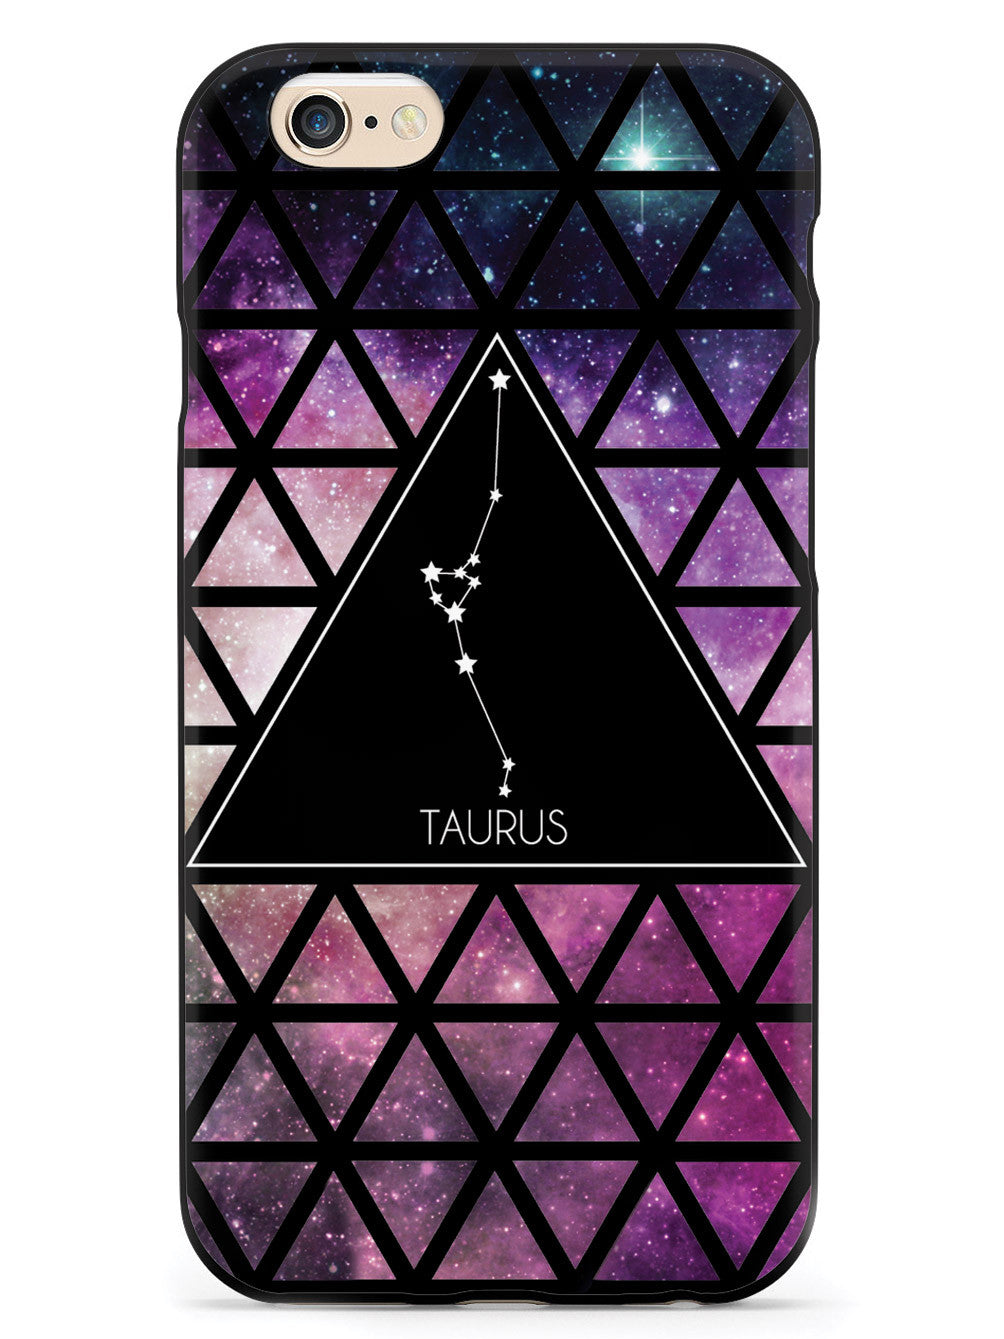 Zodiac Constellation - Taurus Case